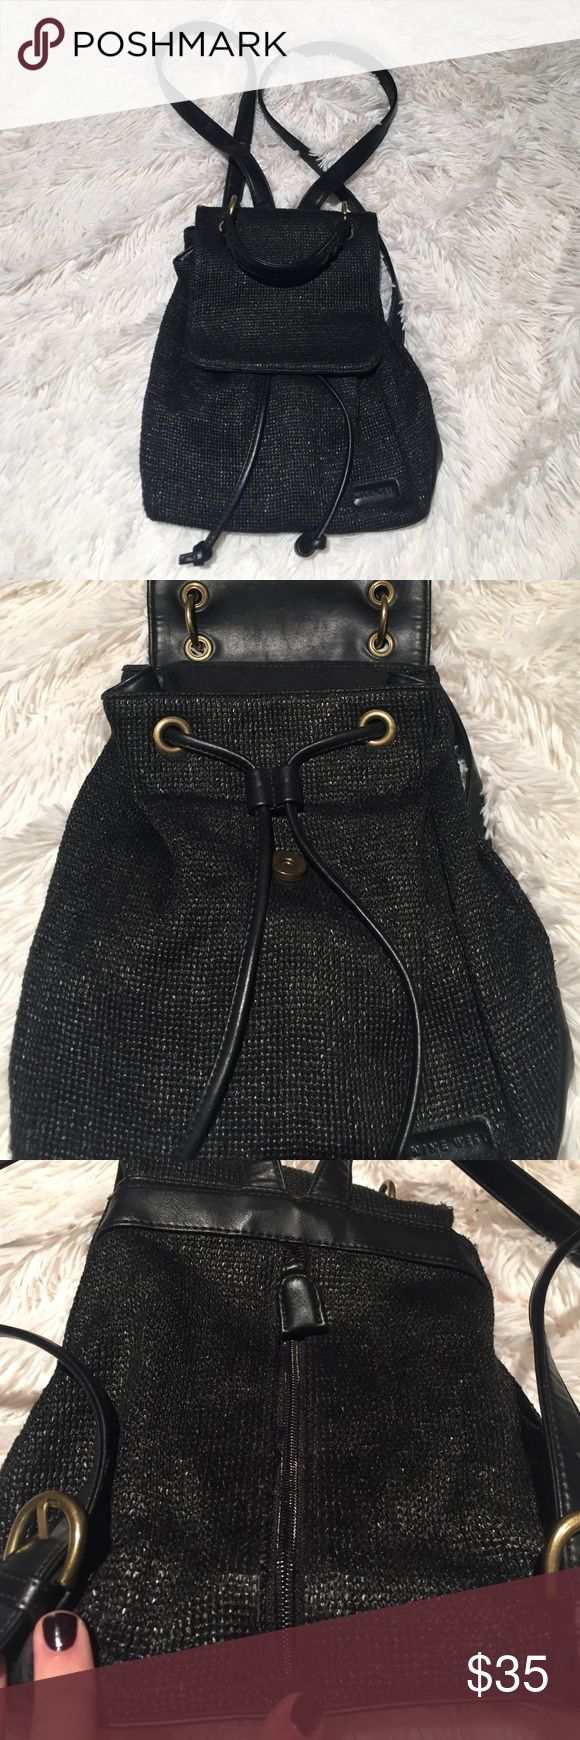 Nine West Back Pack Woven style material, goes perfect with any outfit, vinyl trim Nine West Bags Backpacks